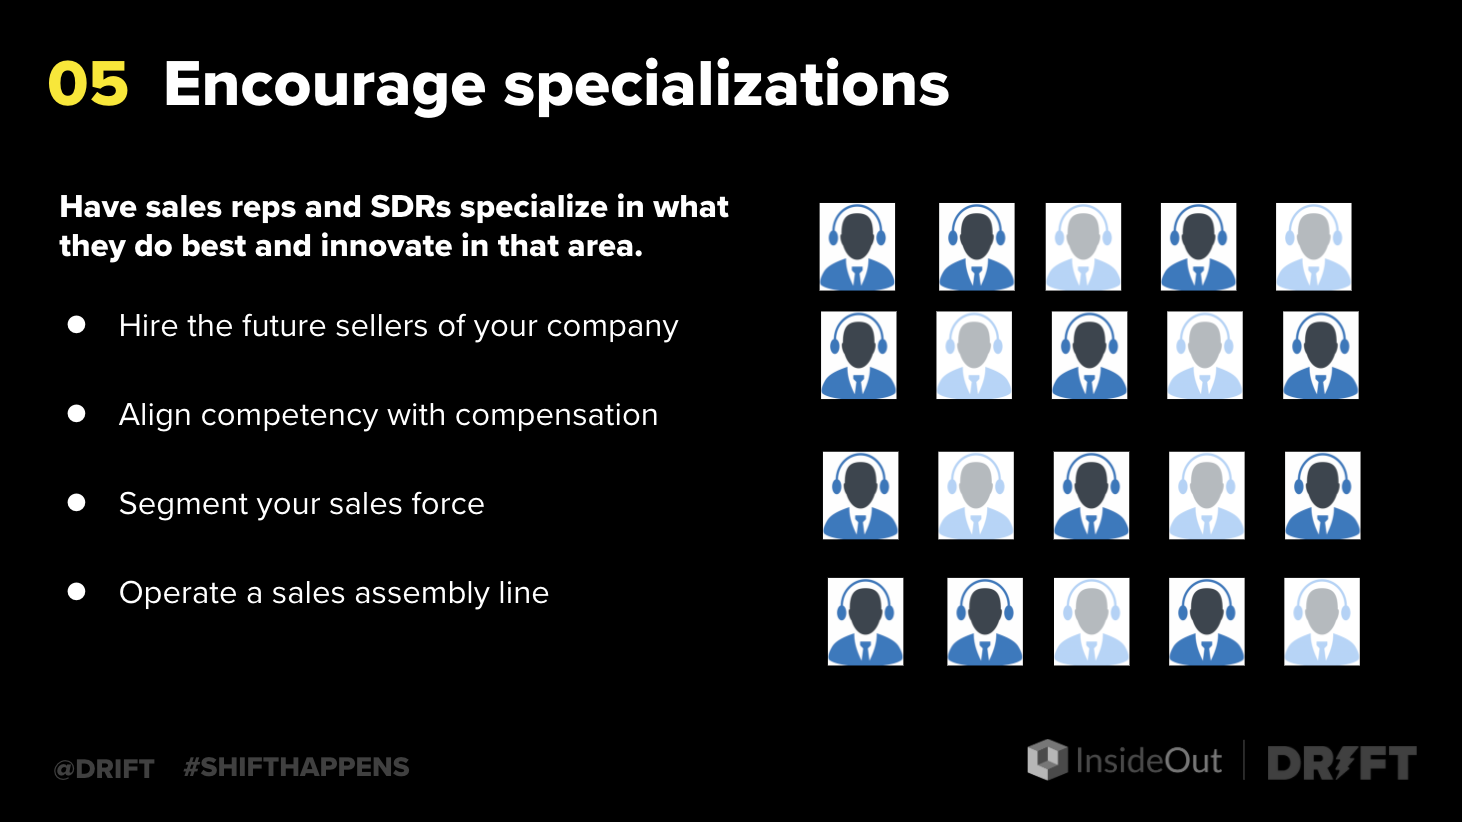 improve sales performance with specializations